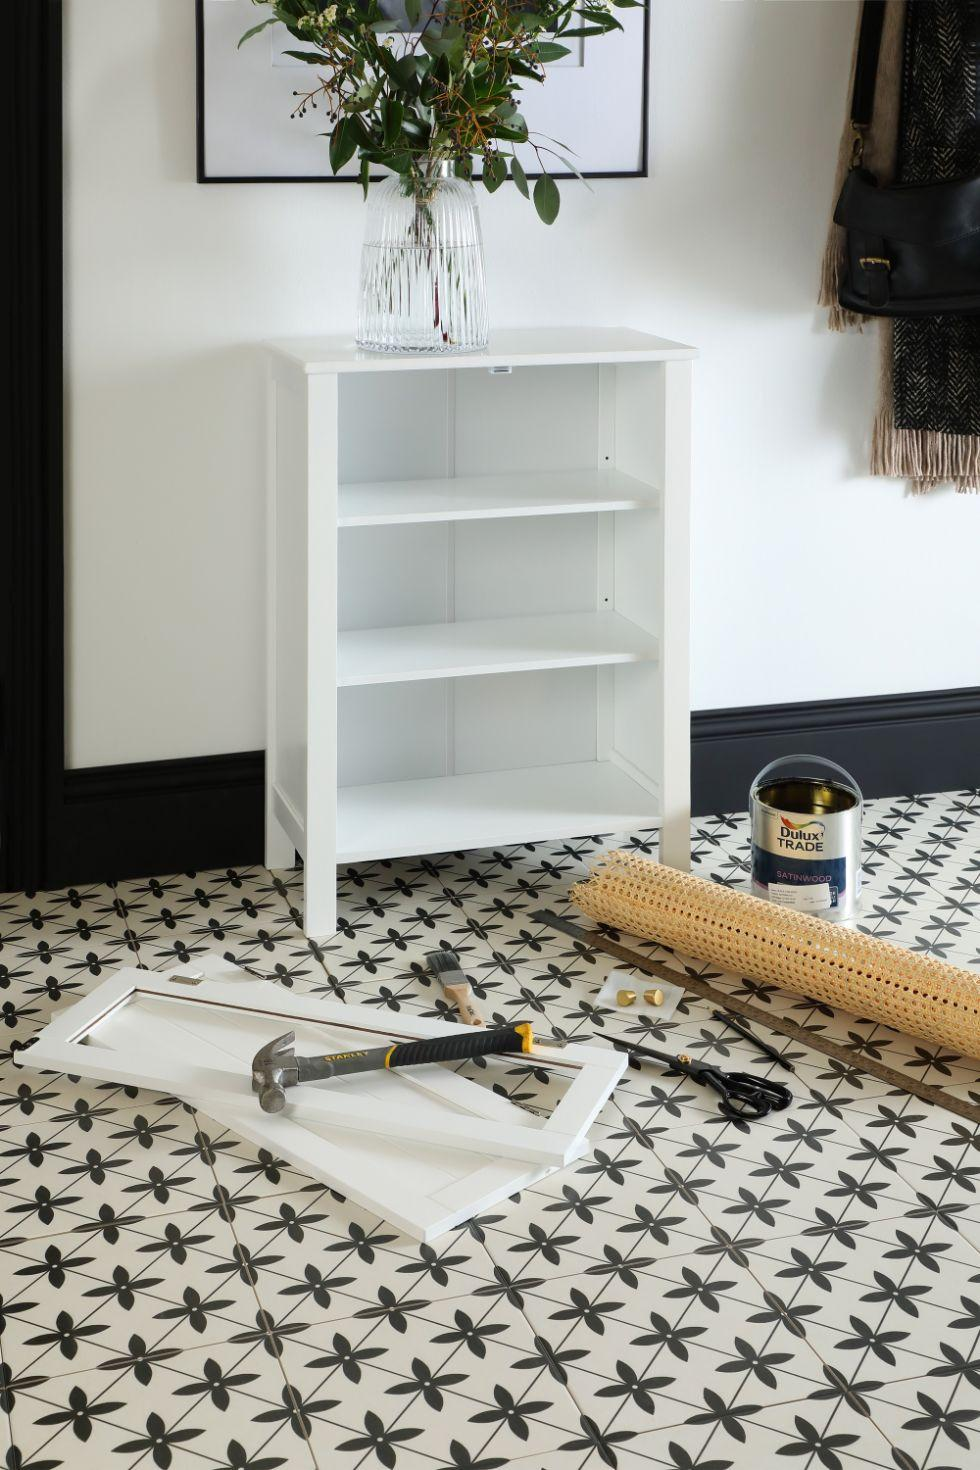 Materials needed to DIY a rattan sideboard